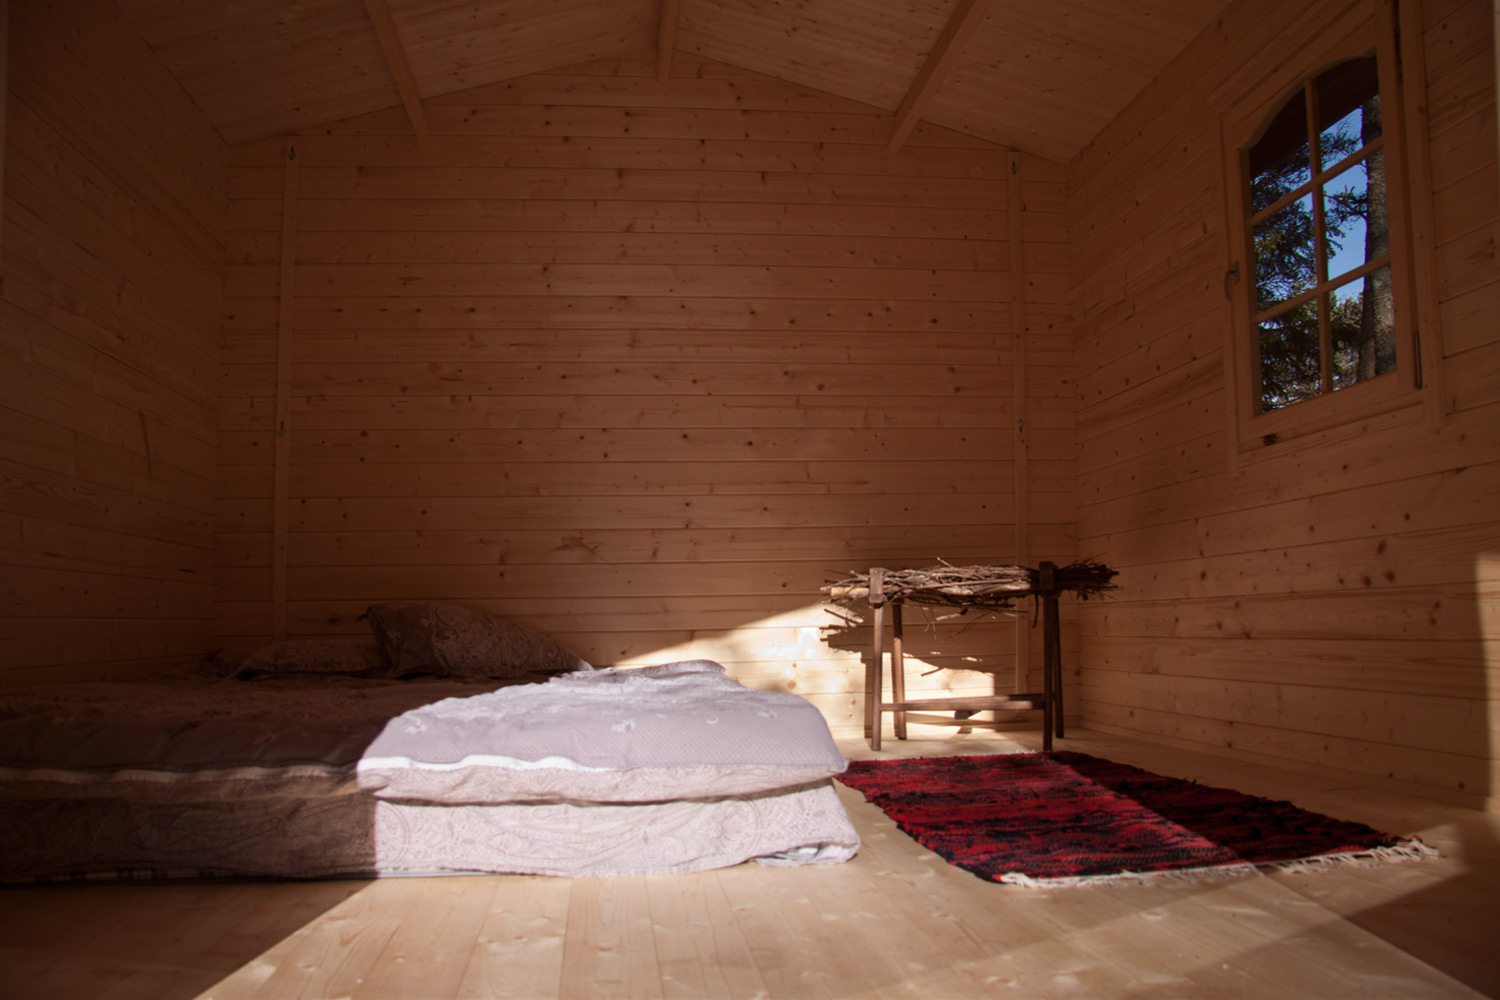 Camping house inside